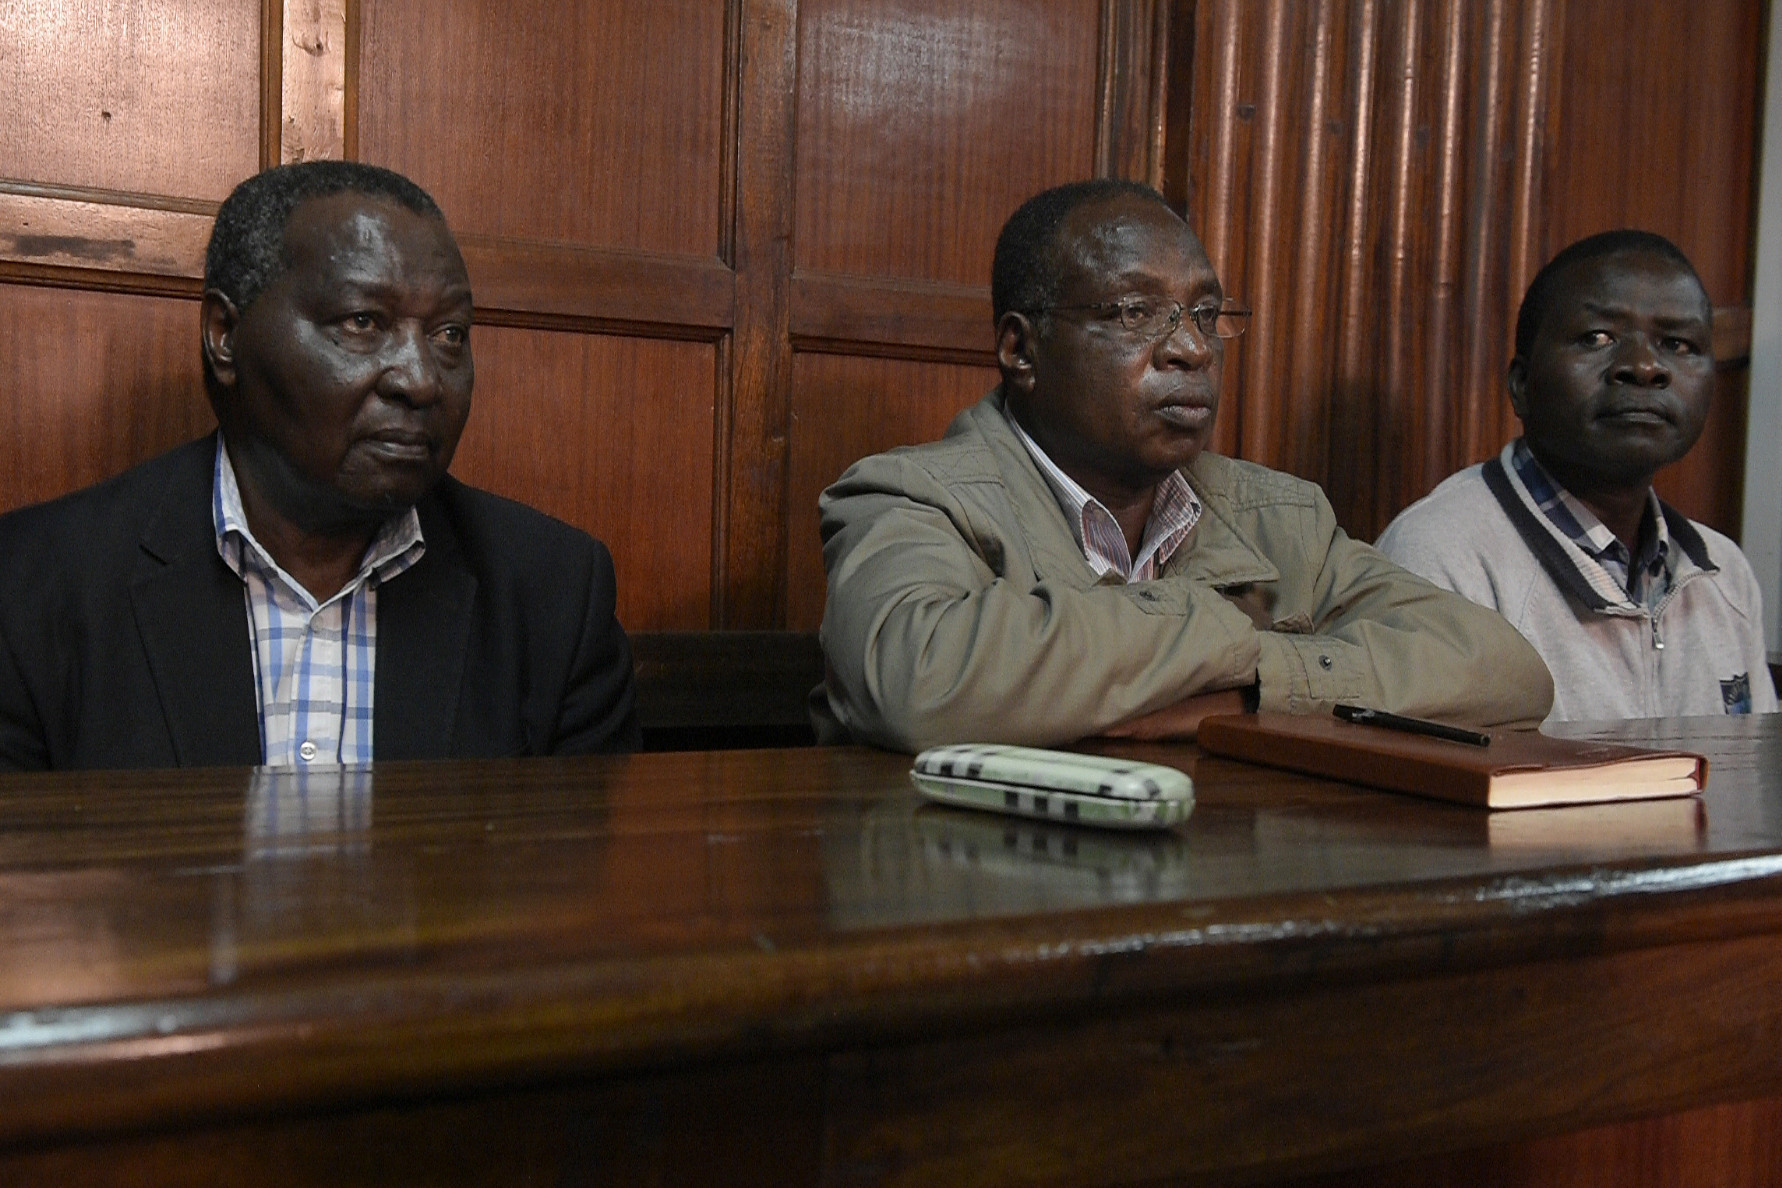 One of several bad news stories to come out of African sport recently includes the trial of several former National Olympic Committee of Kenya members charged with corruption ©Getty Images